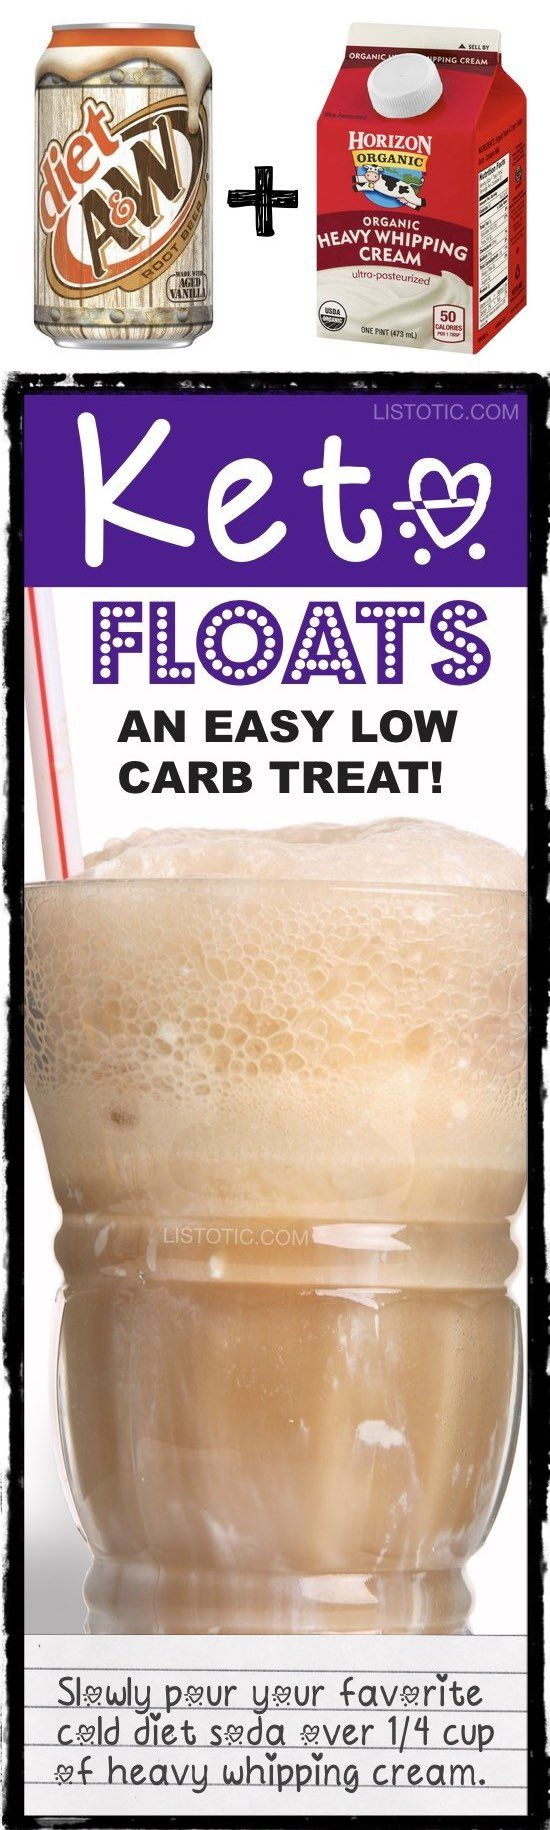 Low carb keto floats! Just like a root beer float but without the guilt! A keto, low carb and diabetic friendly dessert treat and drink. Easy! Just 2 ingredients. Listotic.com